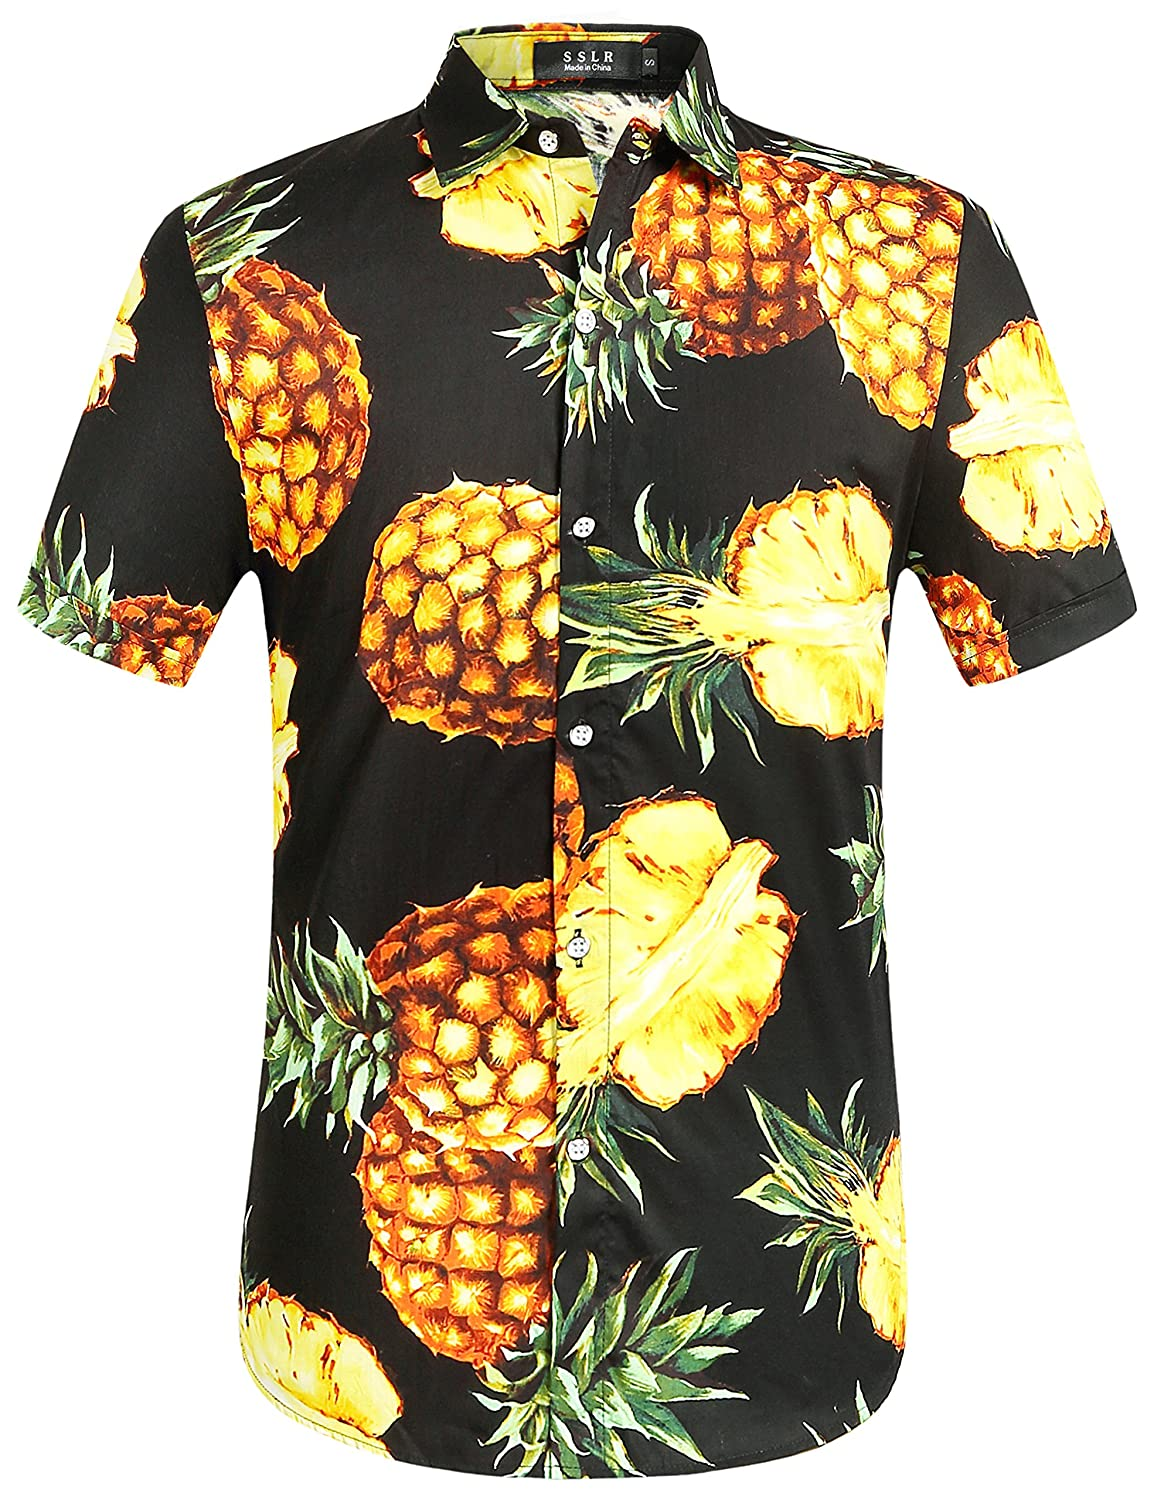 SSLR Mens Pineapple Casual Button Down Short Sleeve Hawaiian Shirt